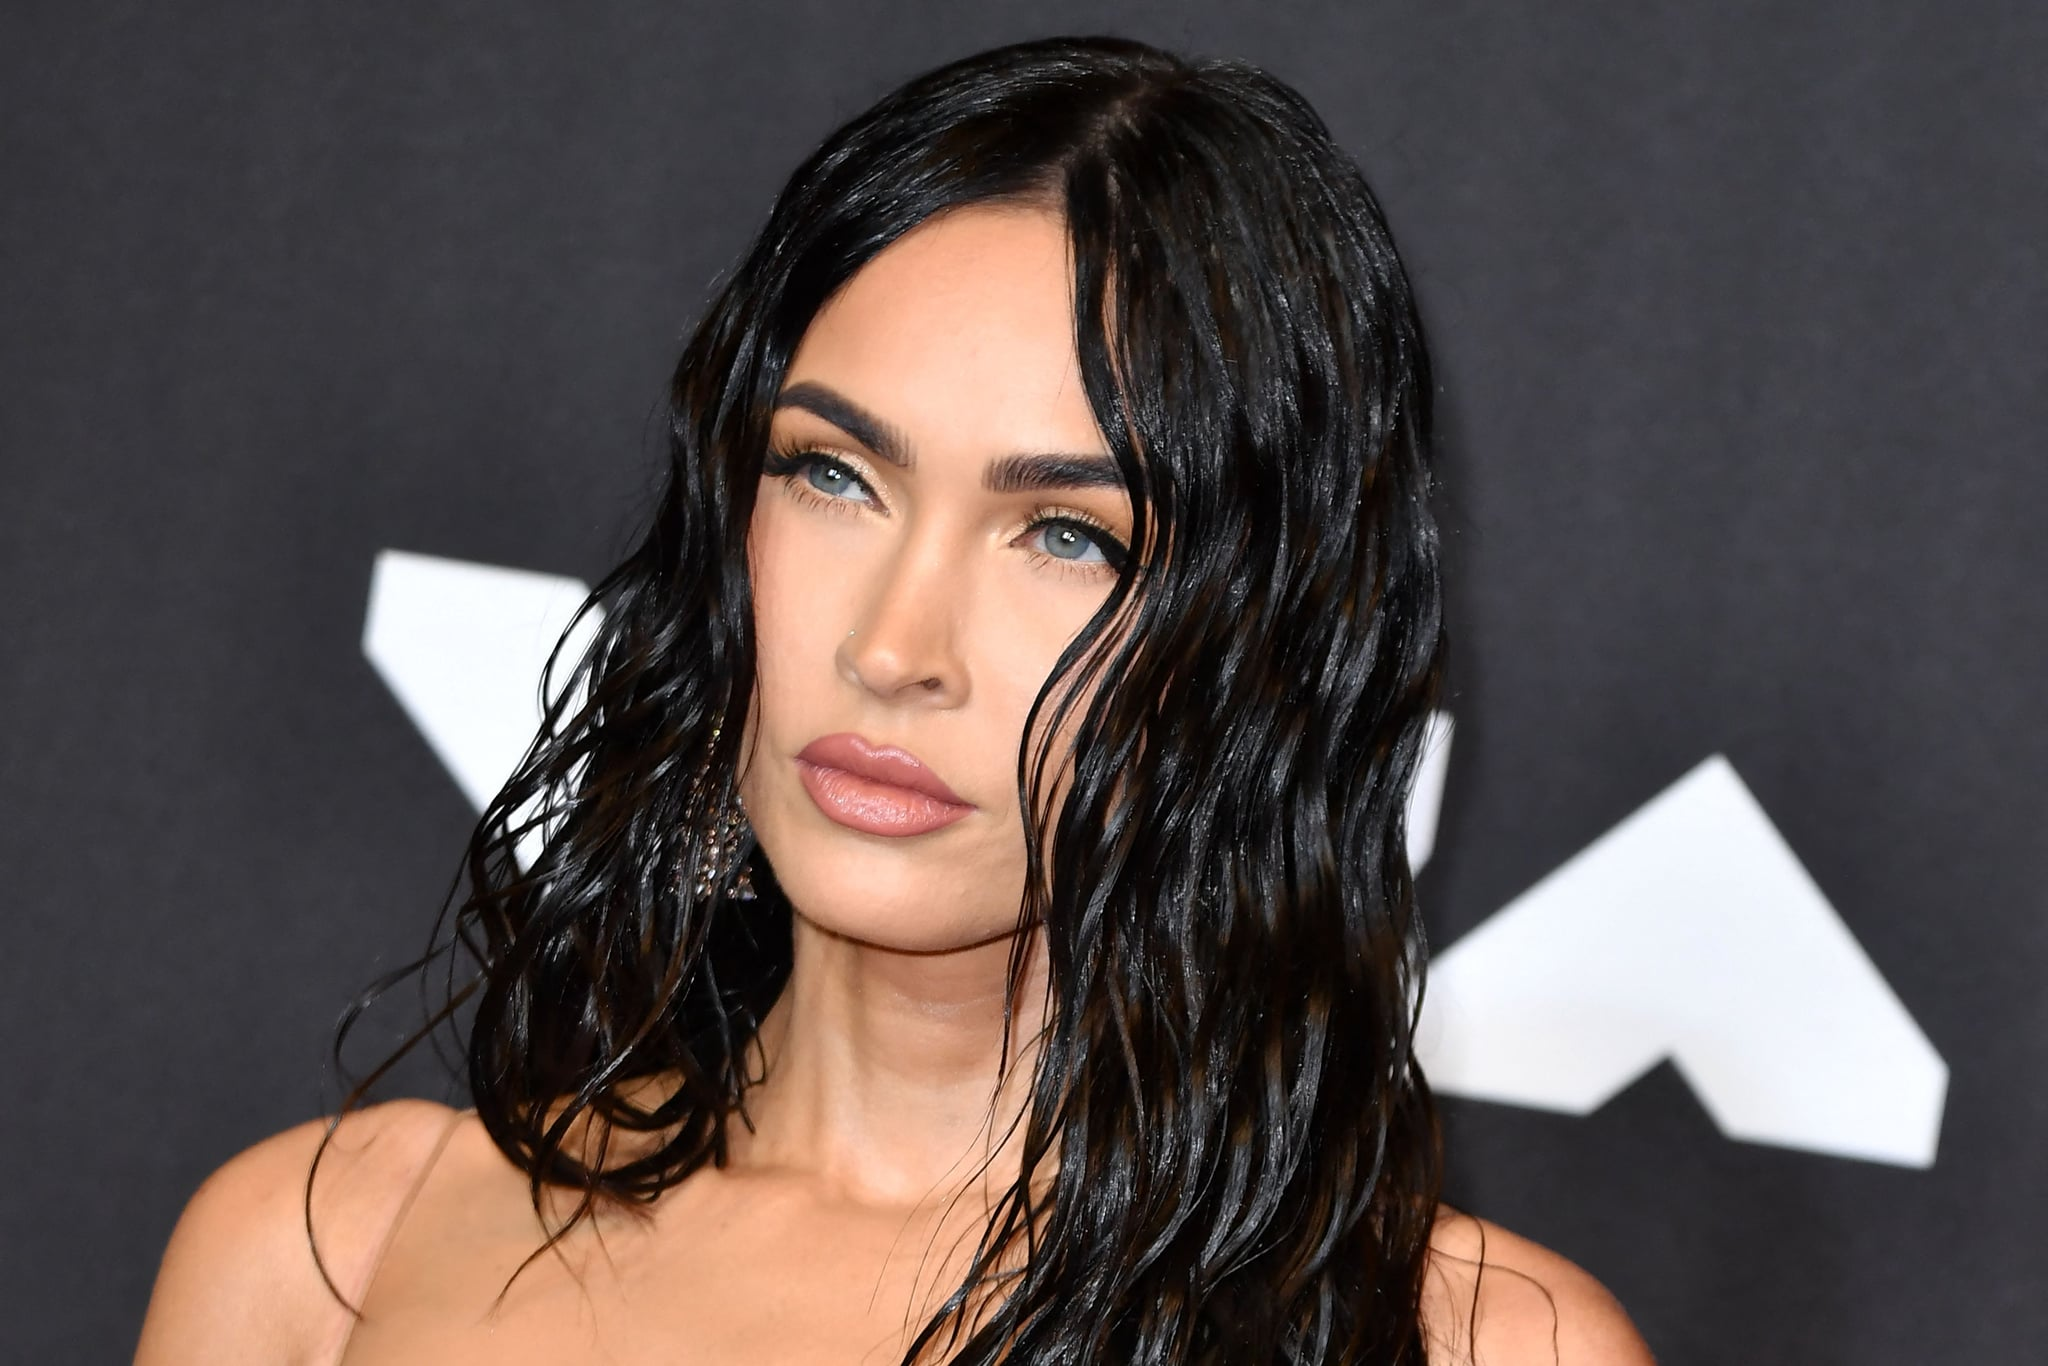 US actress Megan Fox arrives for the 2021 MTV Video Music Awards at Barclays Centre in Brooklyn, New York, September 12, 2021. (Photo by ANGELA  WEISS / AFP) (Photo by ANGELA  WEISS/AFP via Getty Images)